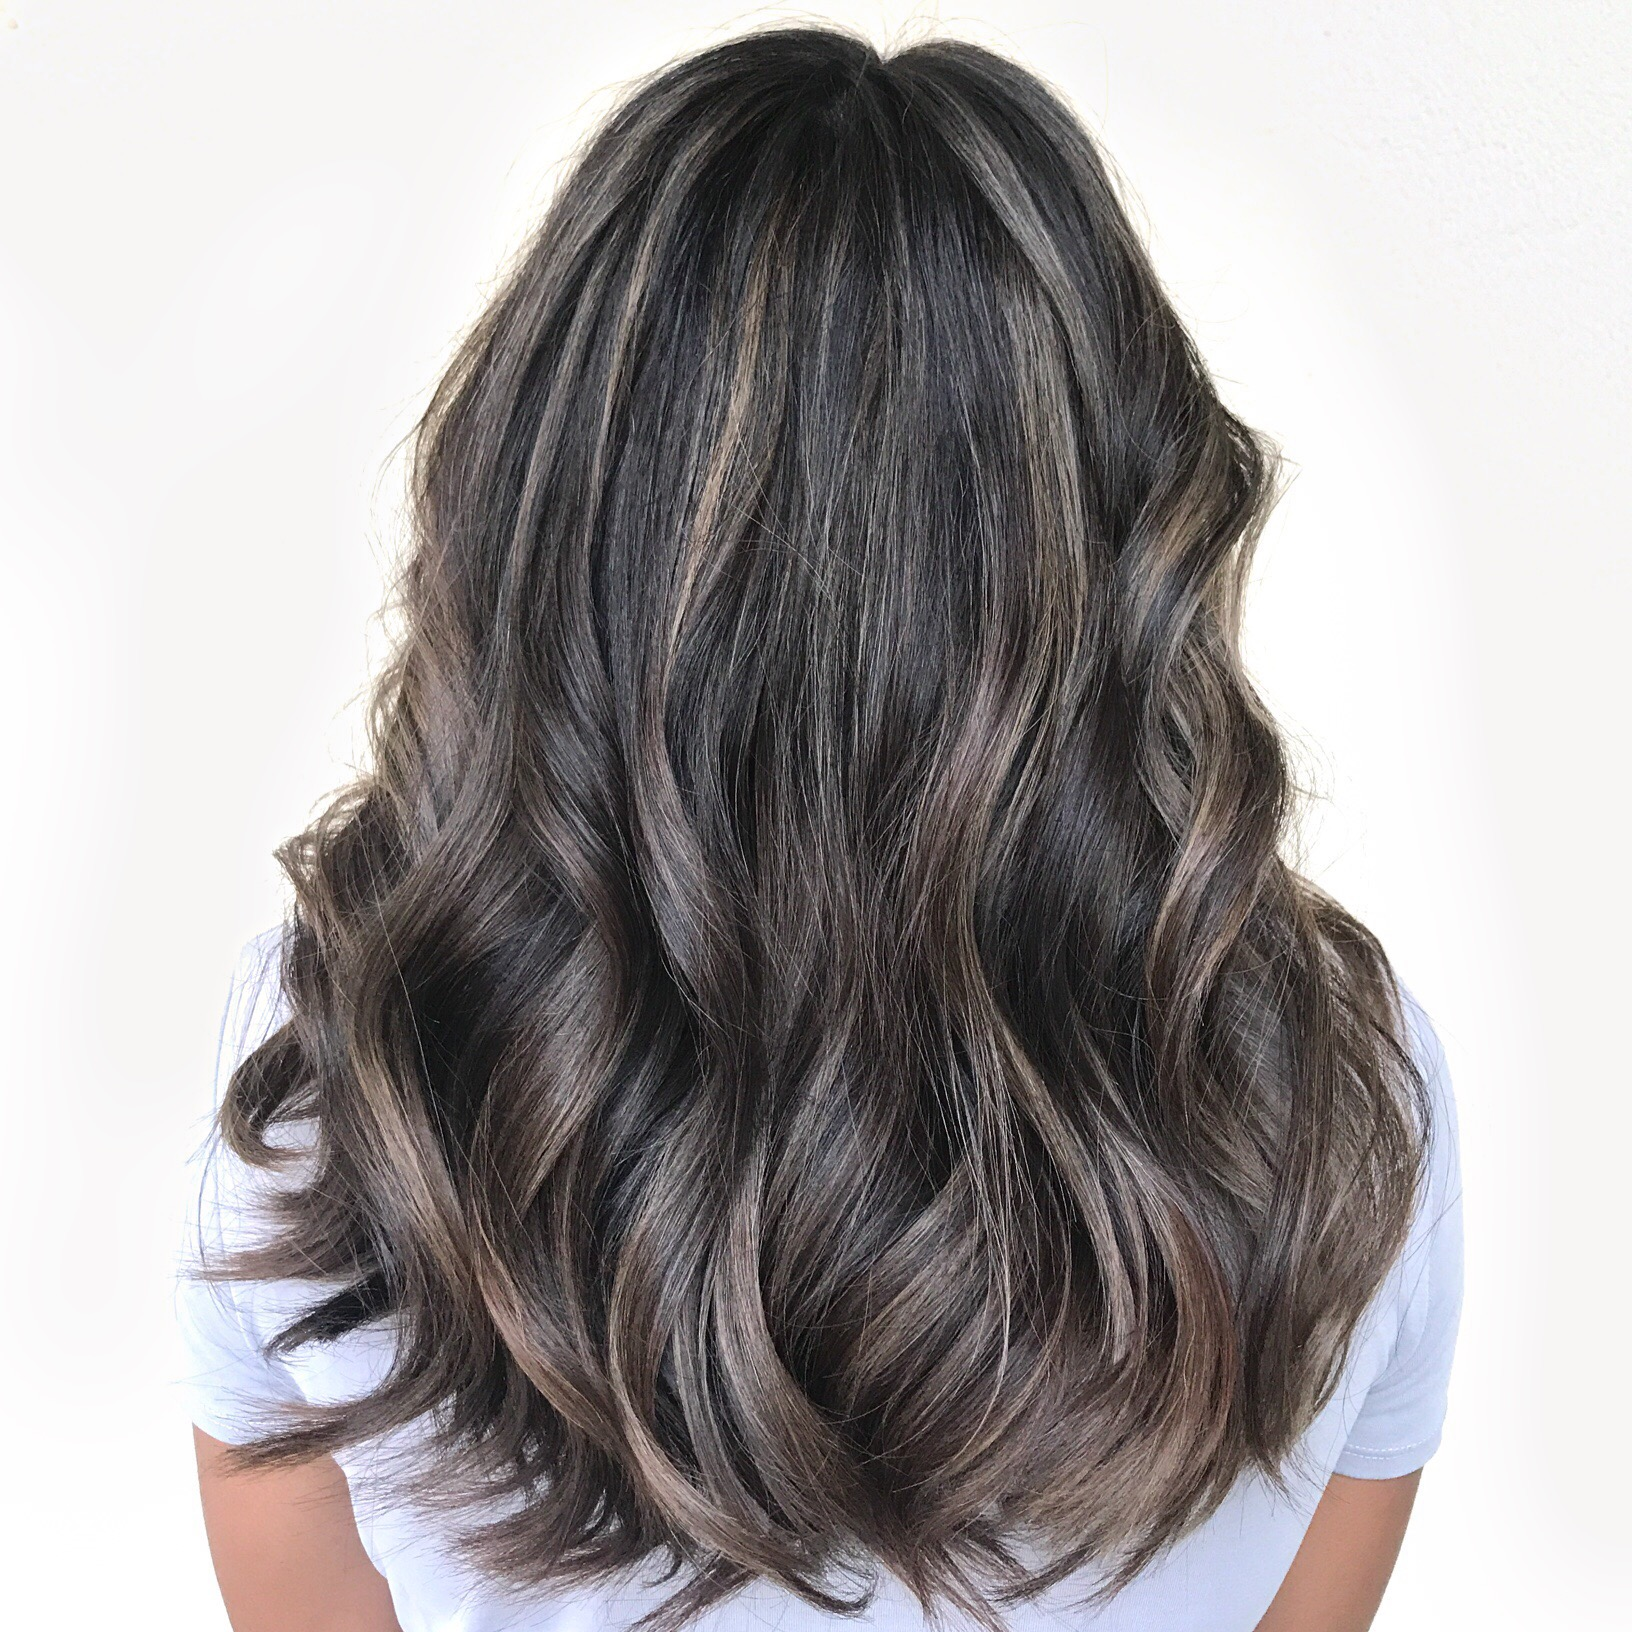 Cool blonde on dark hair, long layers